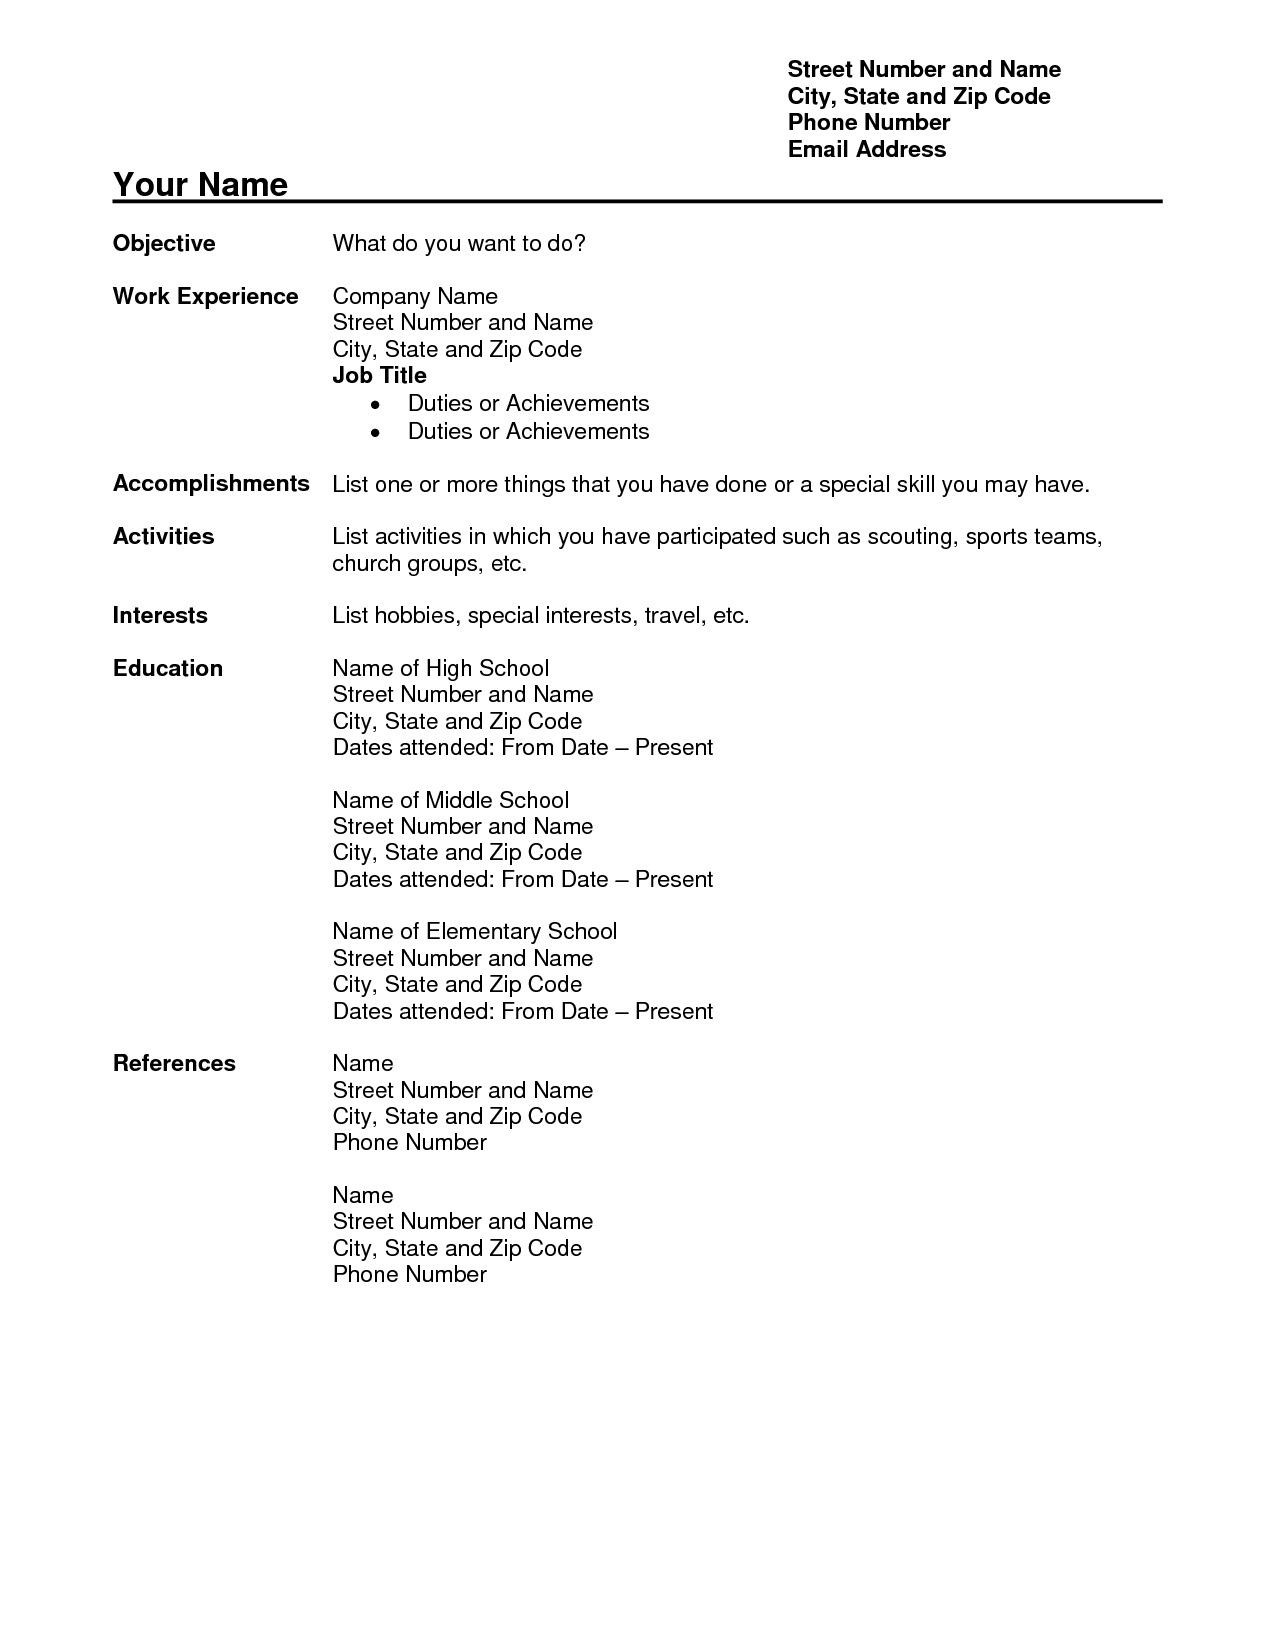 free teacher resume templates download free teacher resume templates download free teacher resume templates microsoft